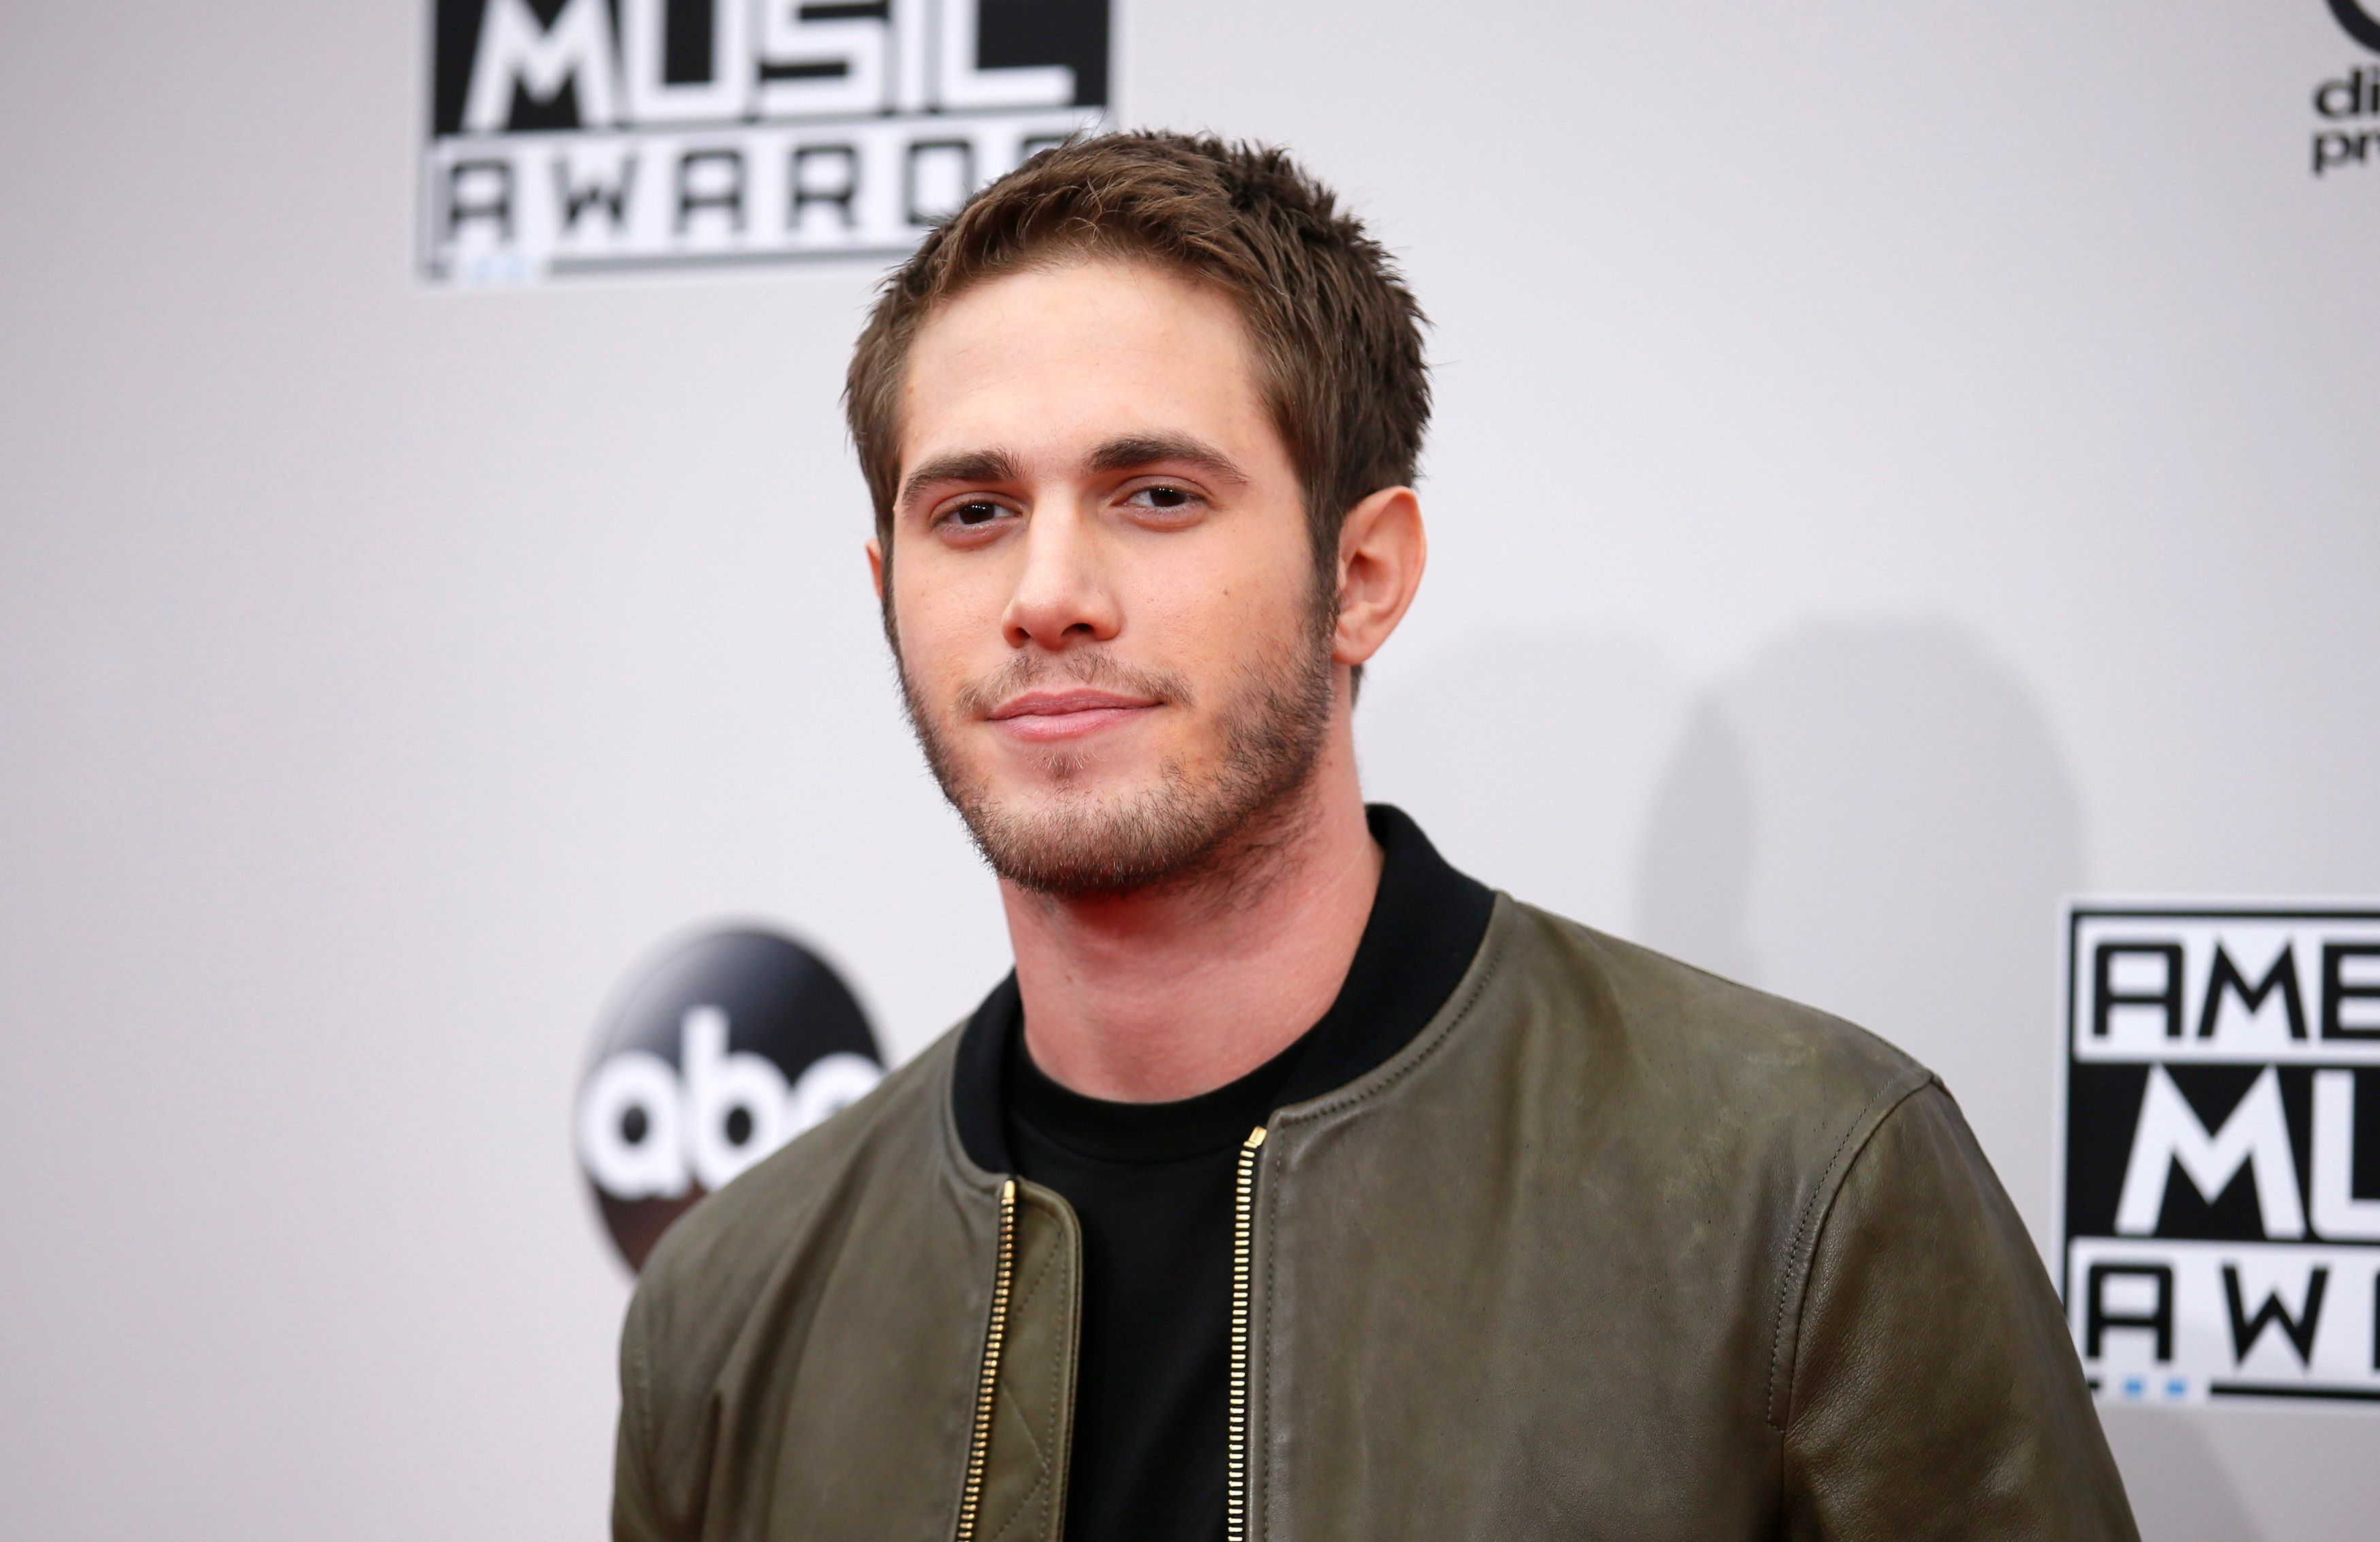 Actor Blake Jenner arrives at the 2016 American Music Awards in Los Angeles, California, U.S., November 20, 2016. REUTERS/Danny Moloshok